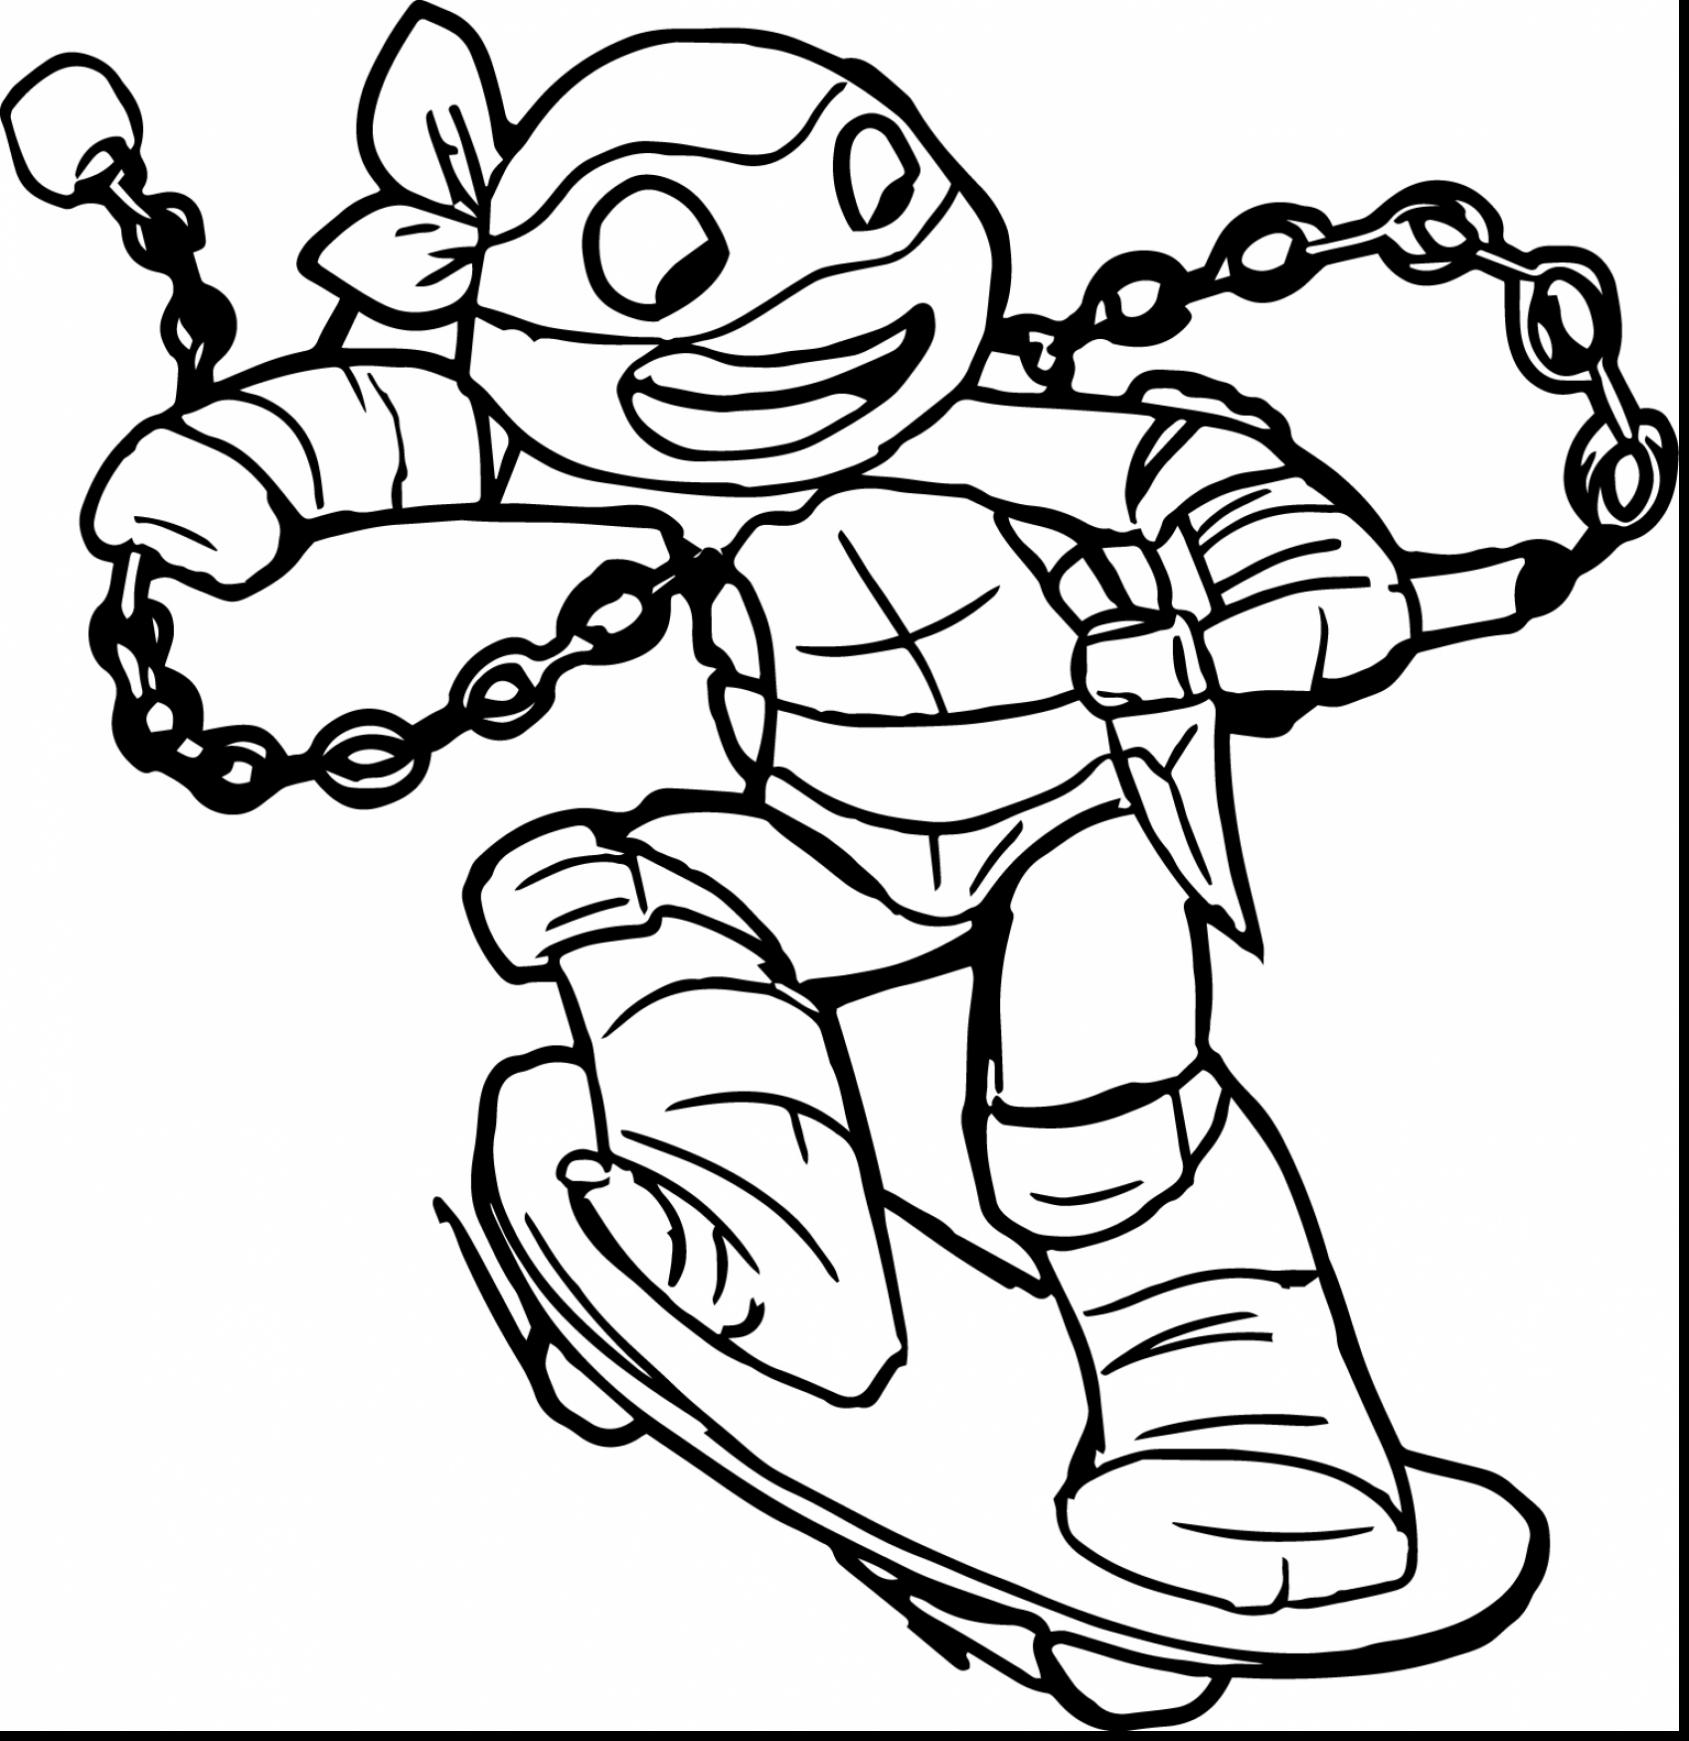 Ninja Turtle Head Drawing At Getdrawings Com Free For Personal Use